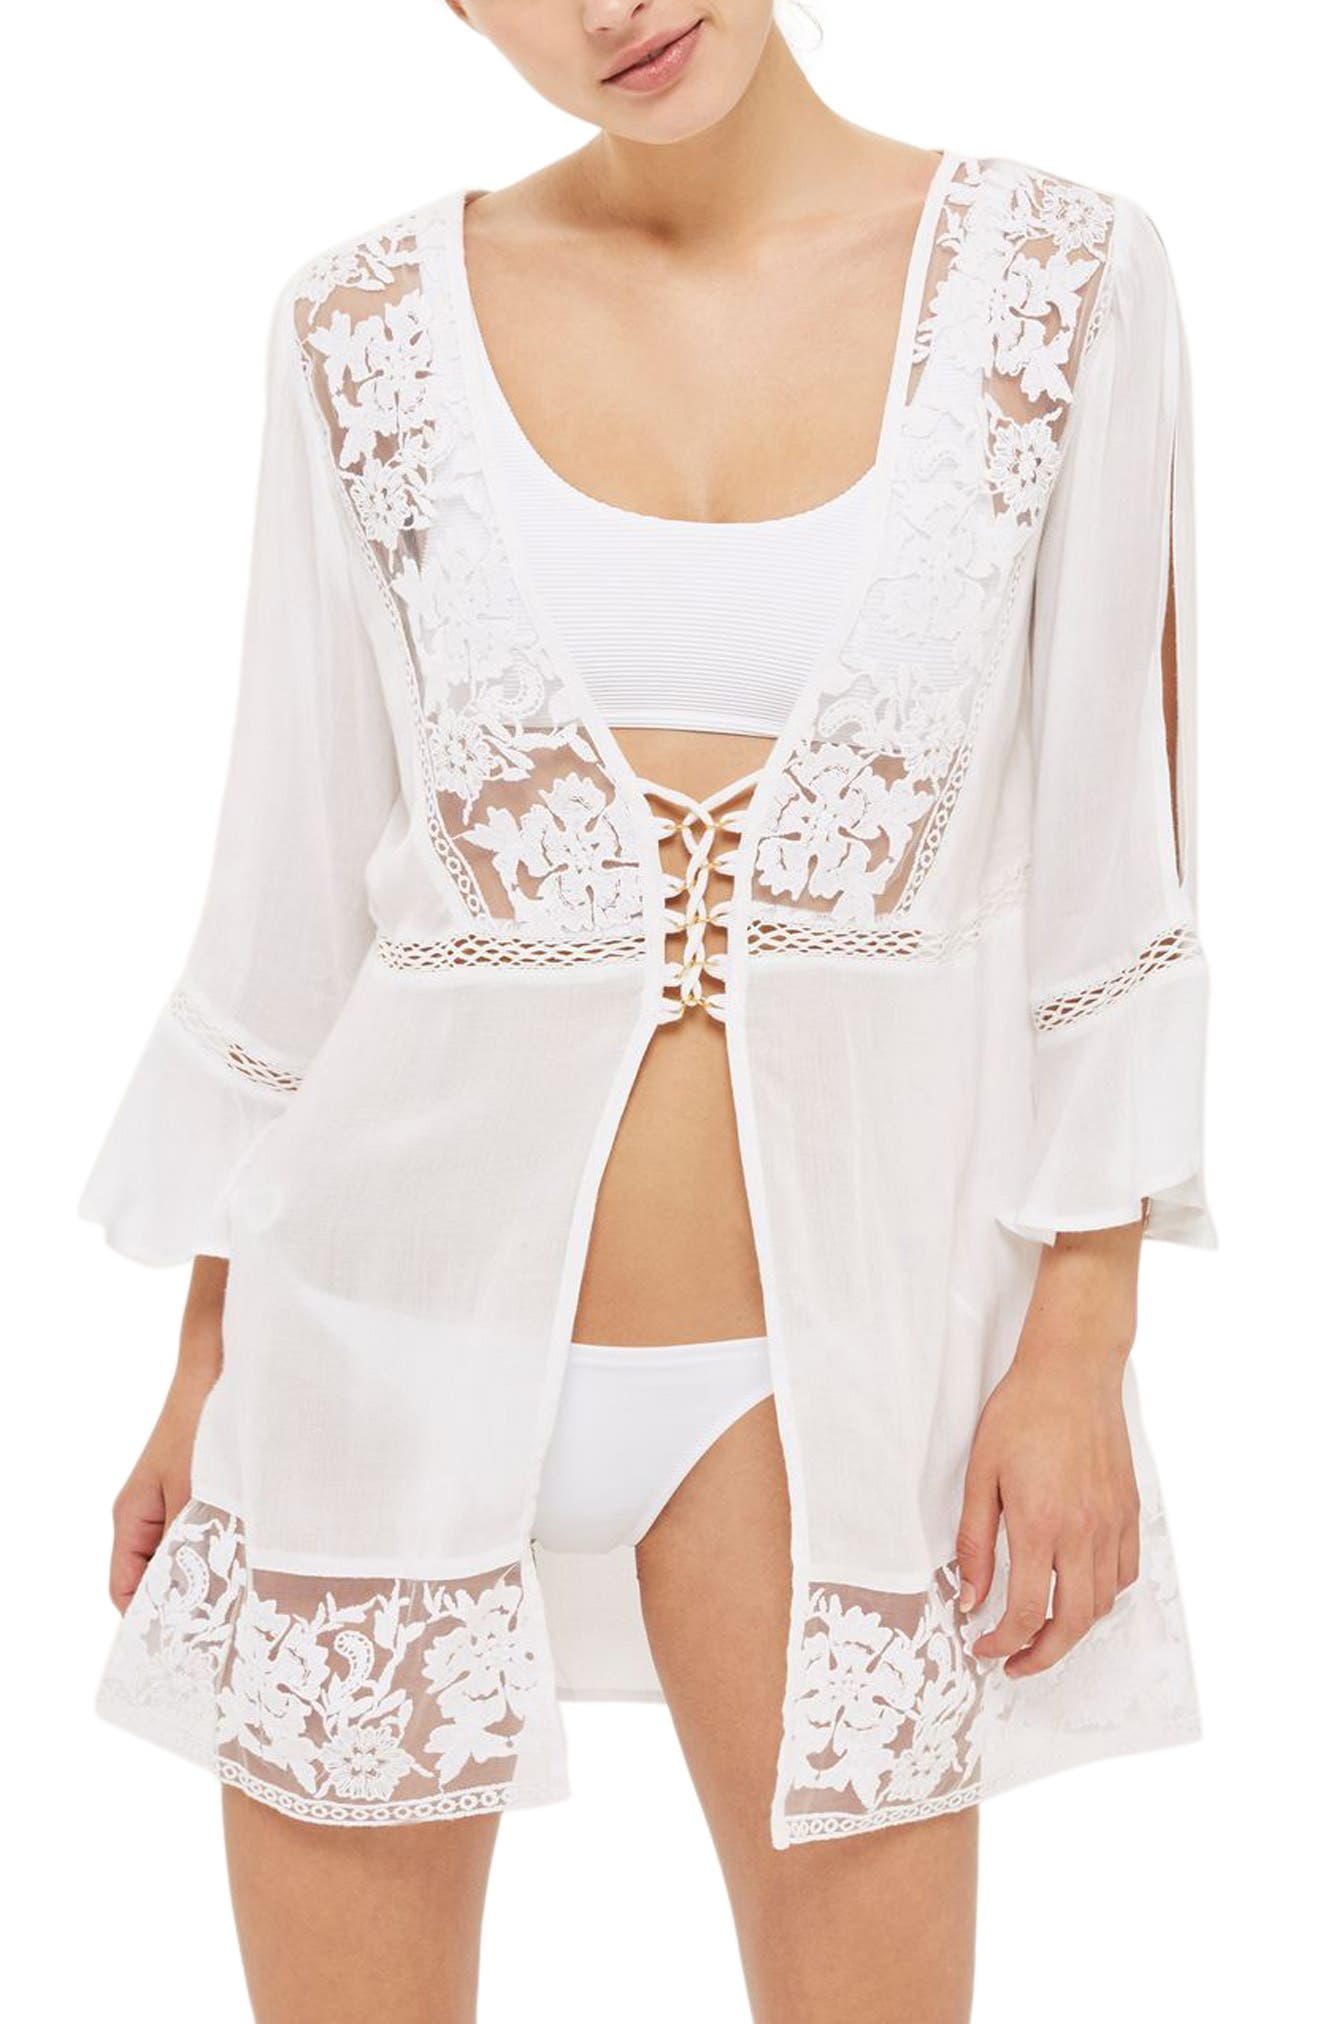 Topshop Lace-Up Cover-Up Caftan